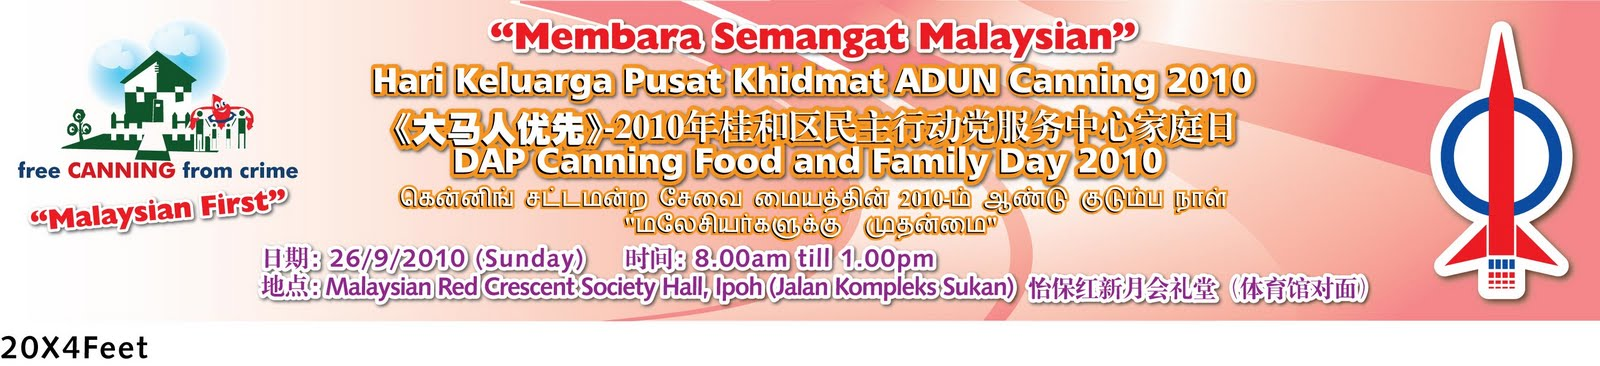 """Malaysian First"" DAP Canning Food and Family Day 2010"